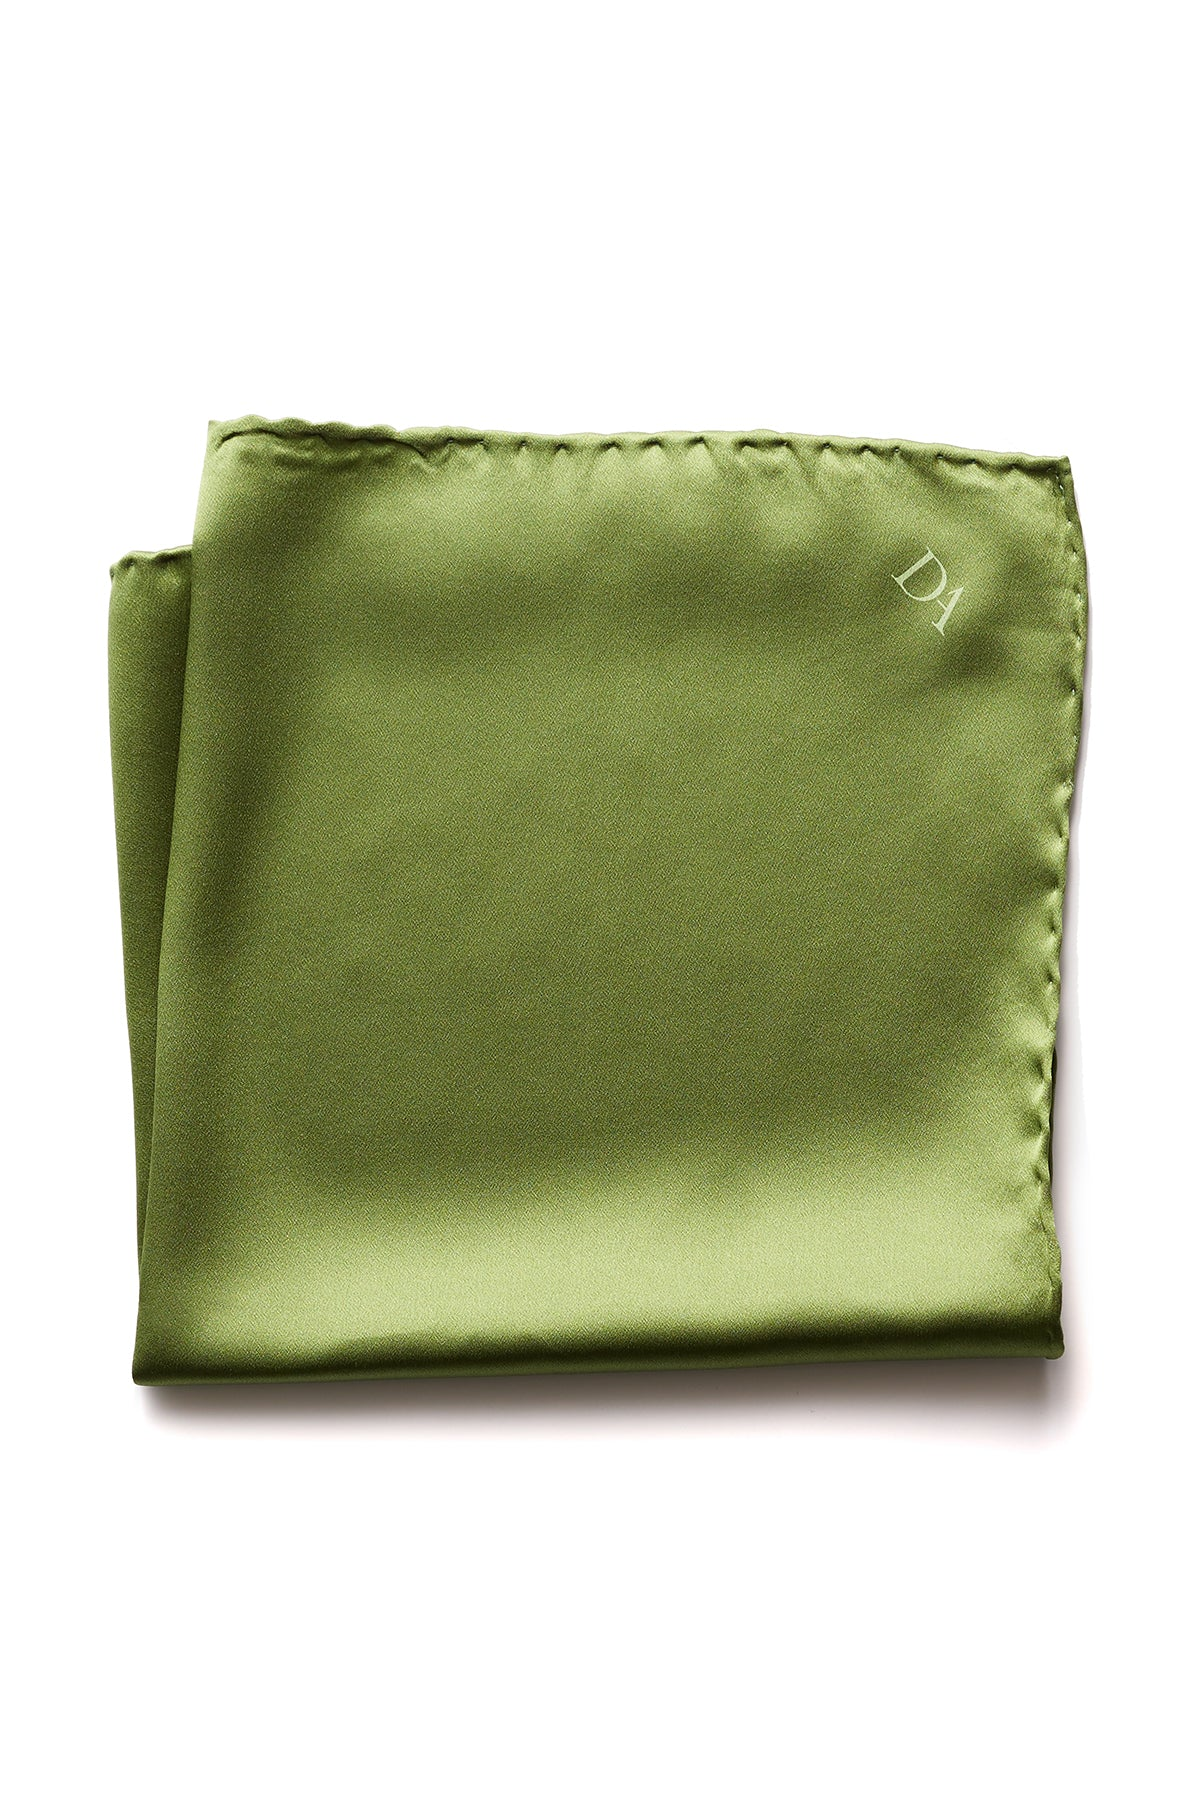 David August Solid Chartreuse Green Italian Silk Pocket Square